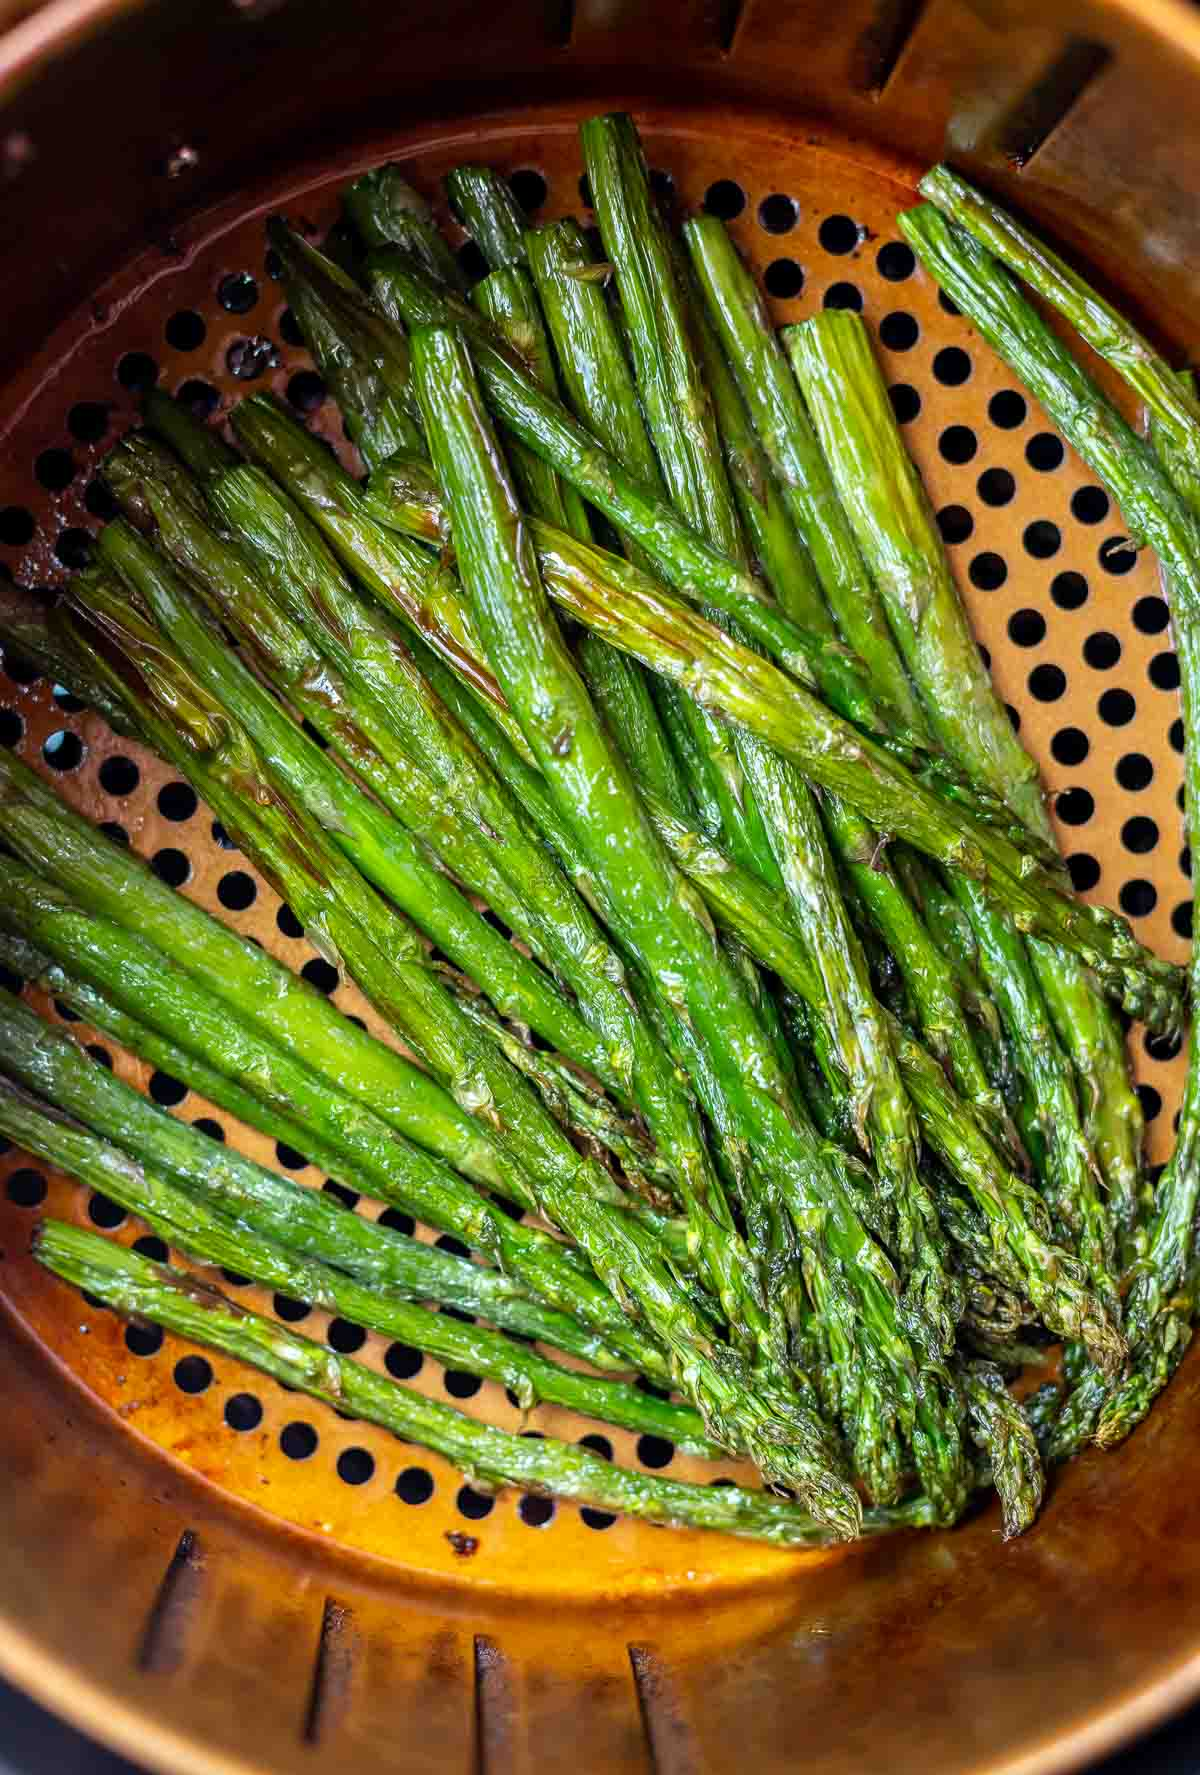 roasted air fried asparagus in air fryer basket